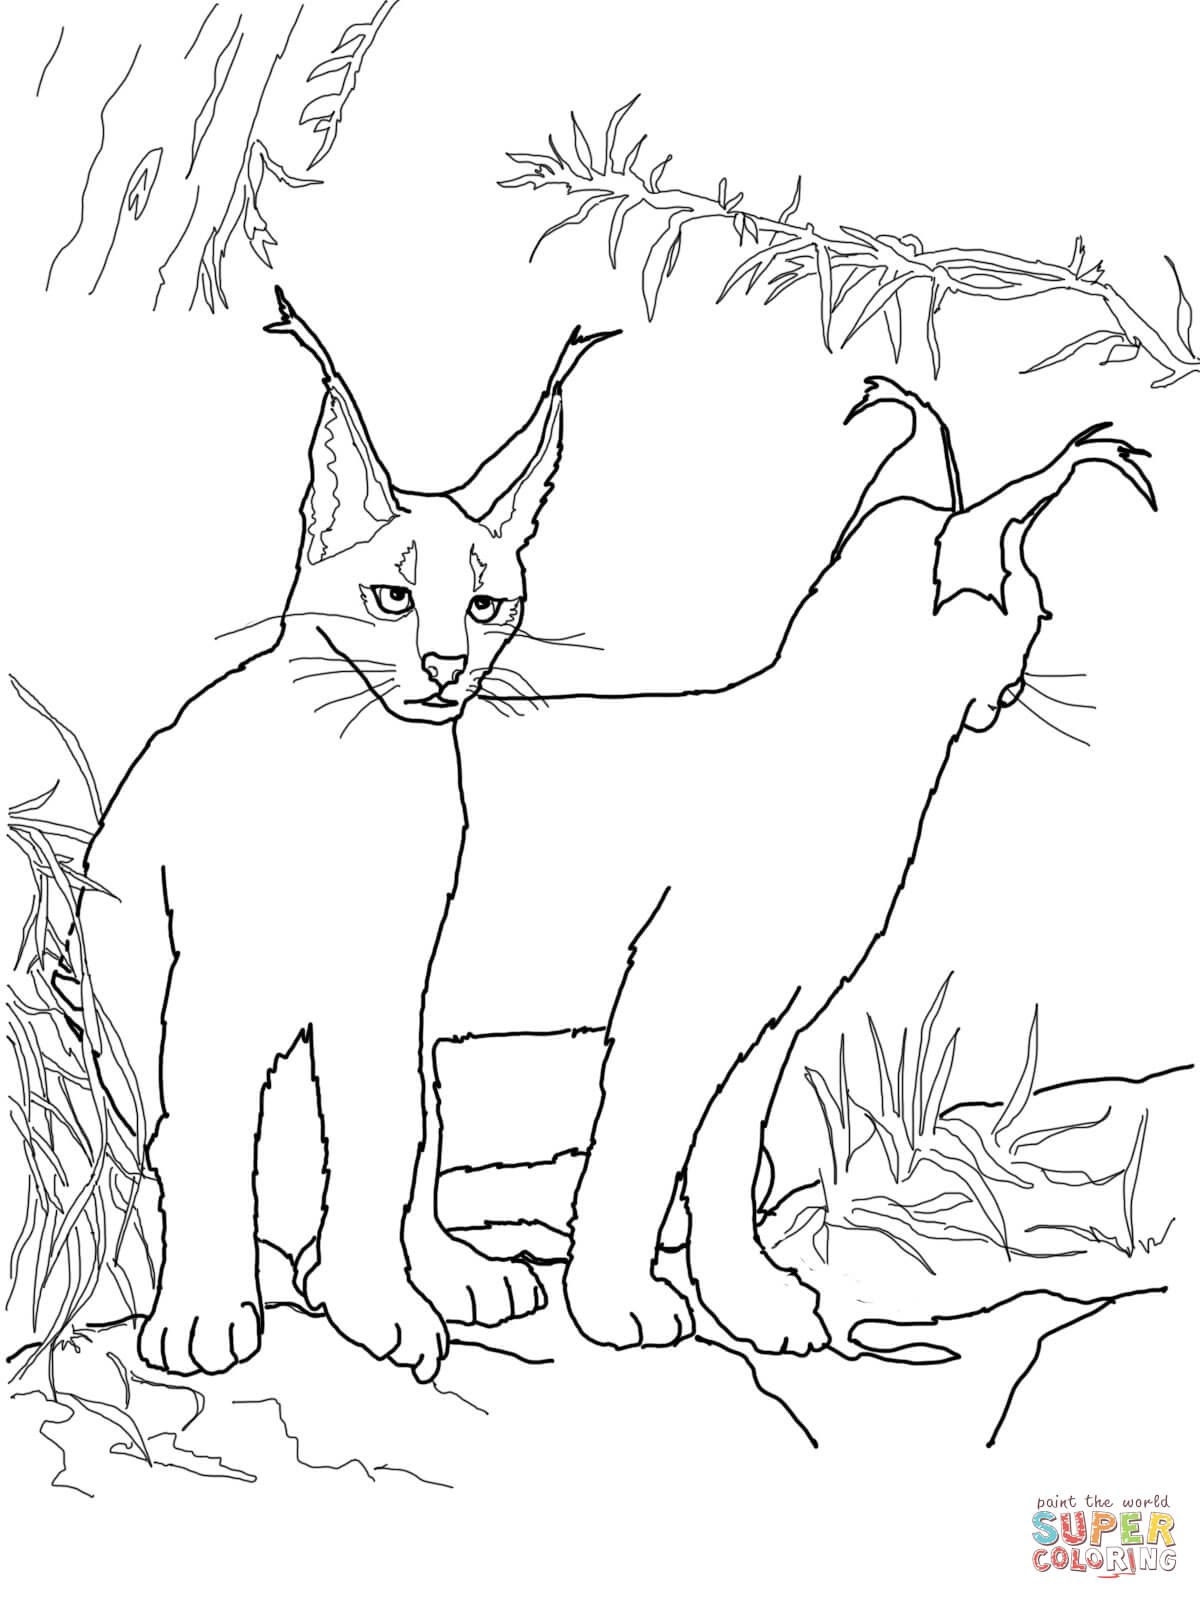 caracal kittens coloring page free printable coloring pages